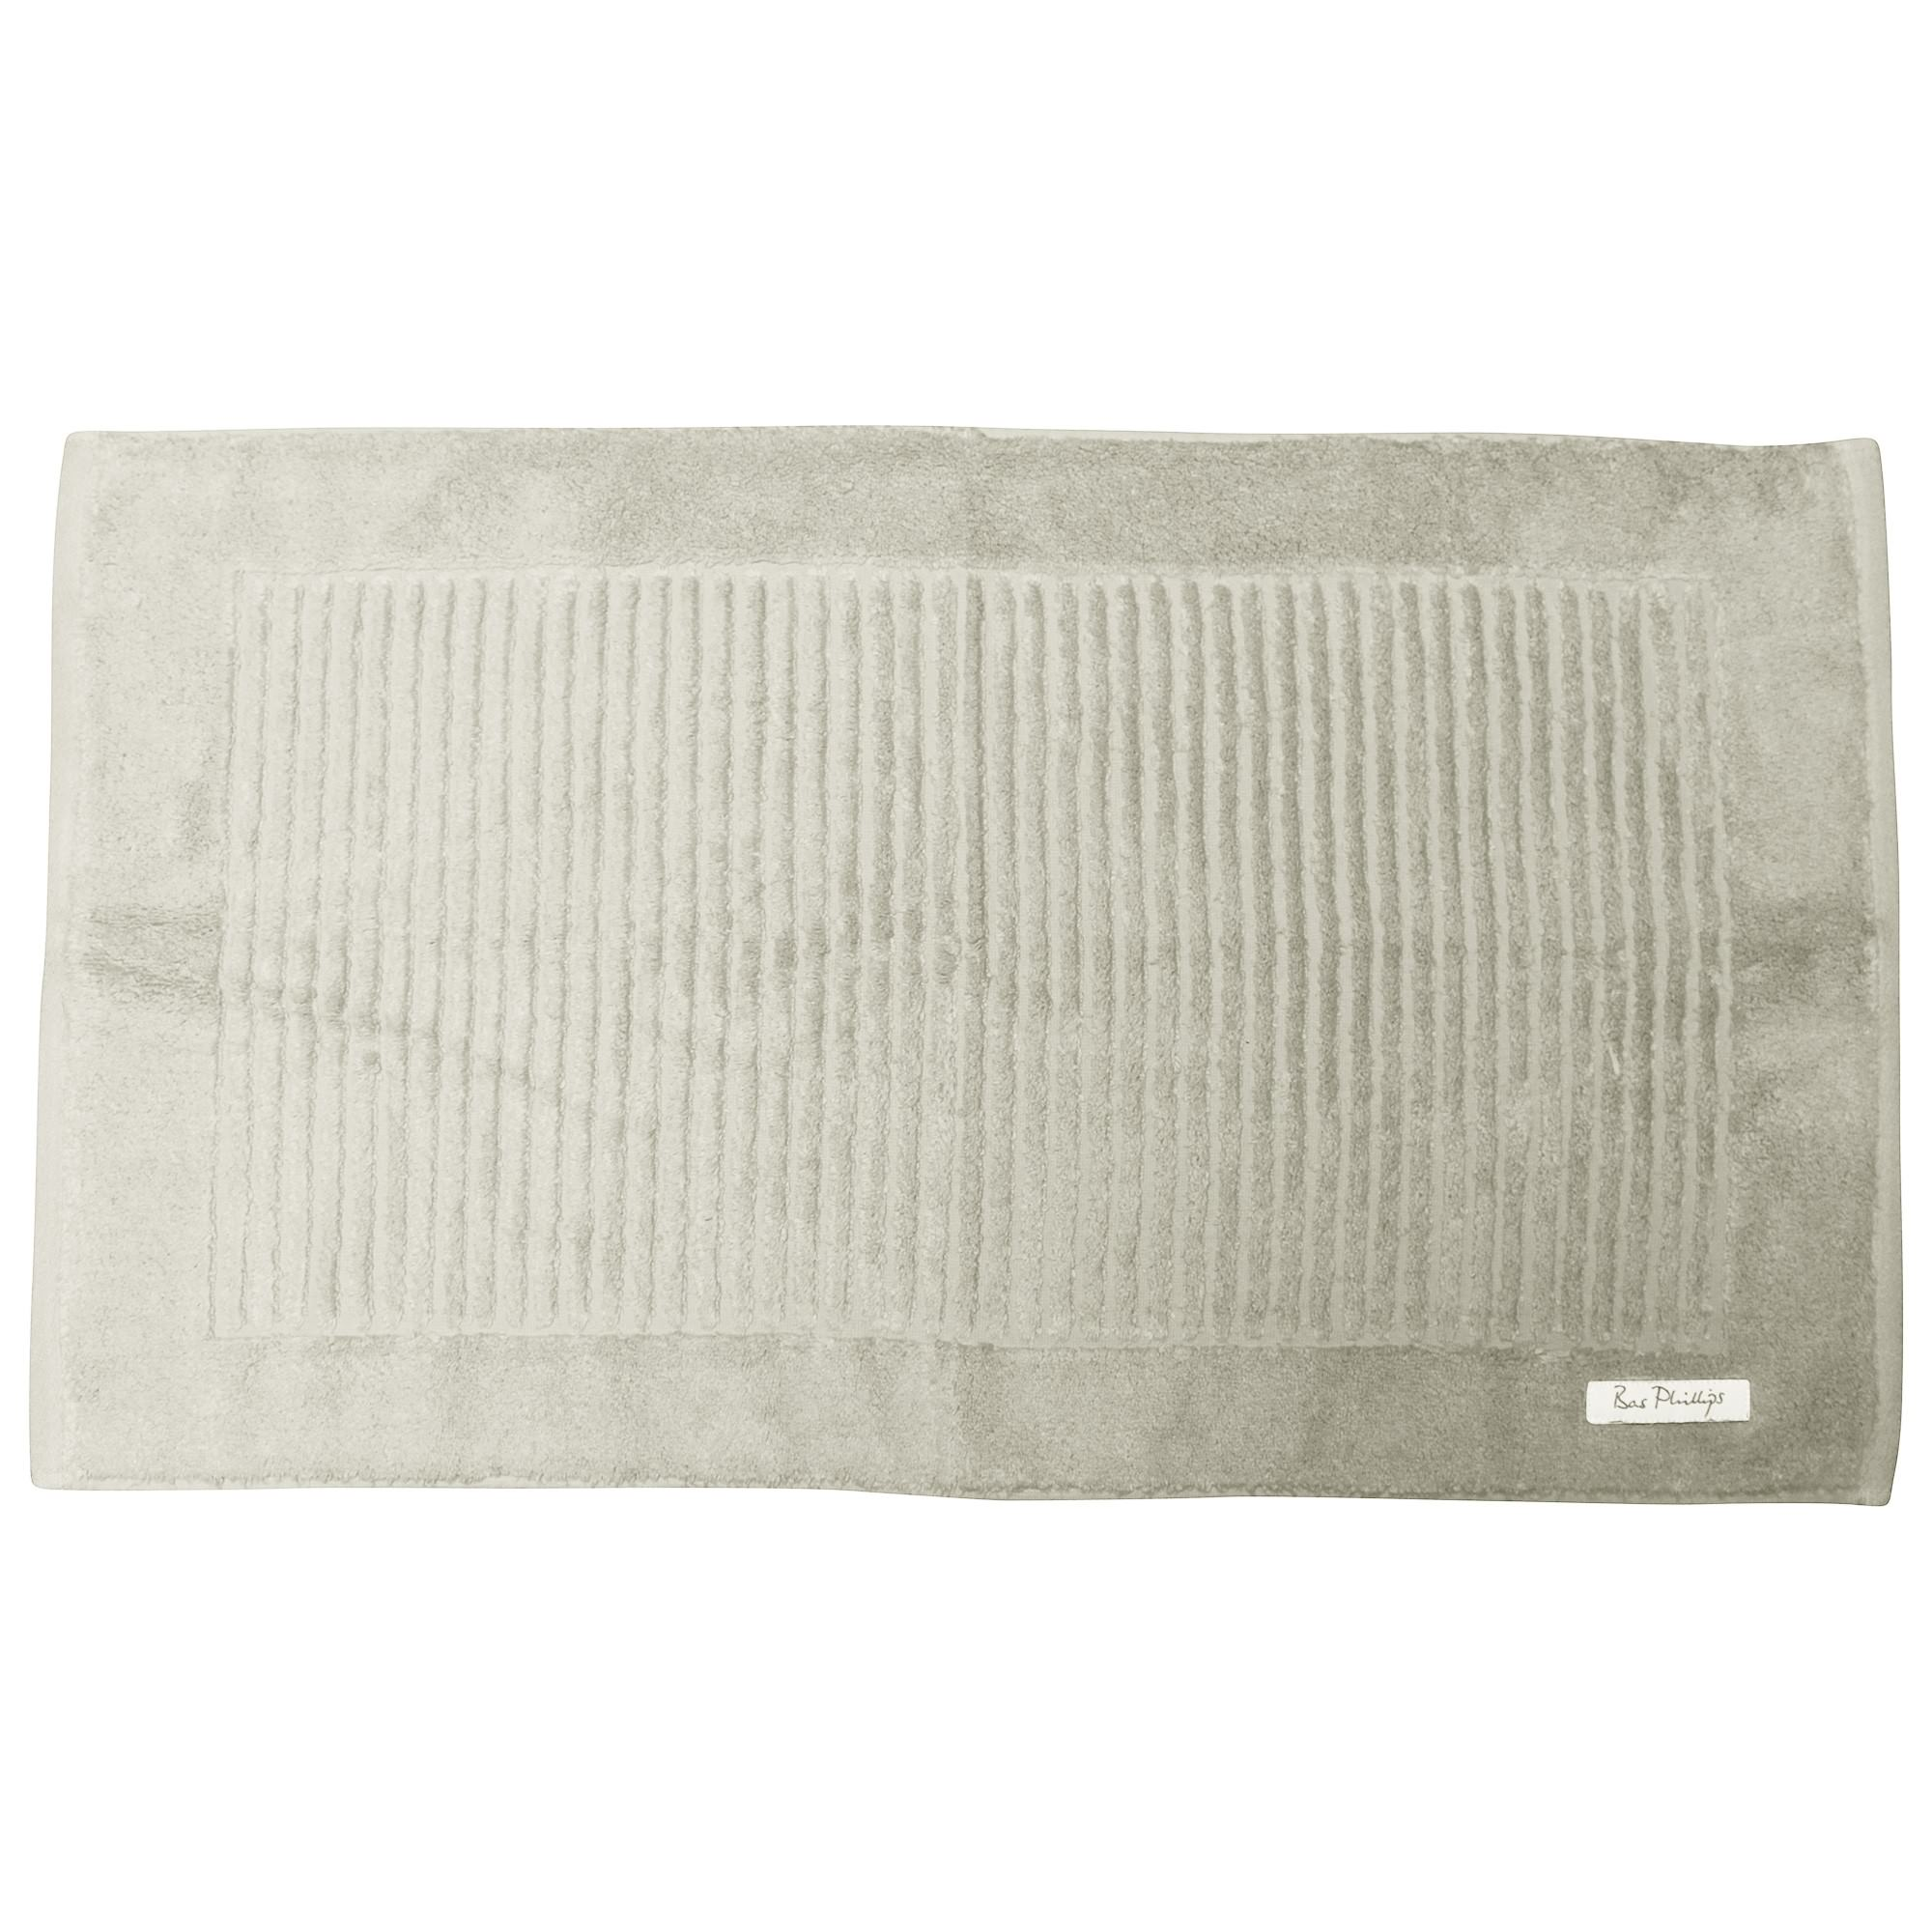 Bas Phillips Hayman Zero Twist Cotton Bath Mat, Oatmeal